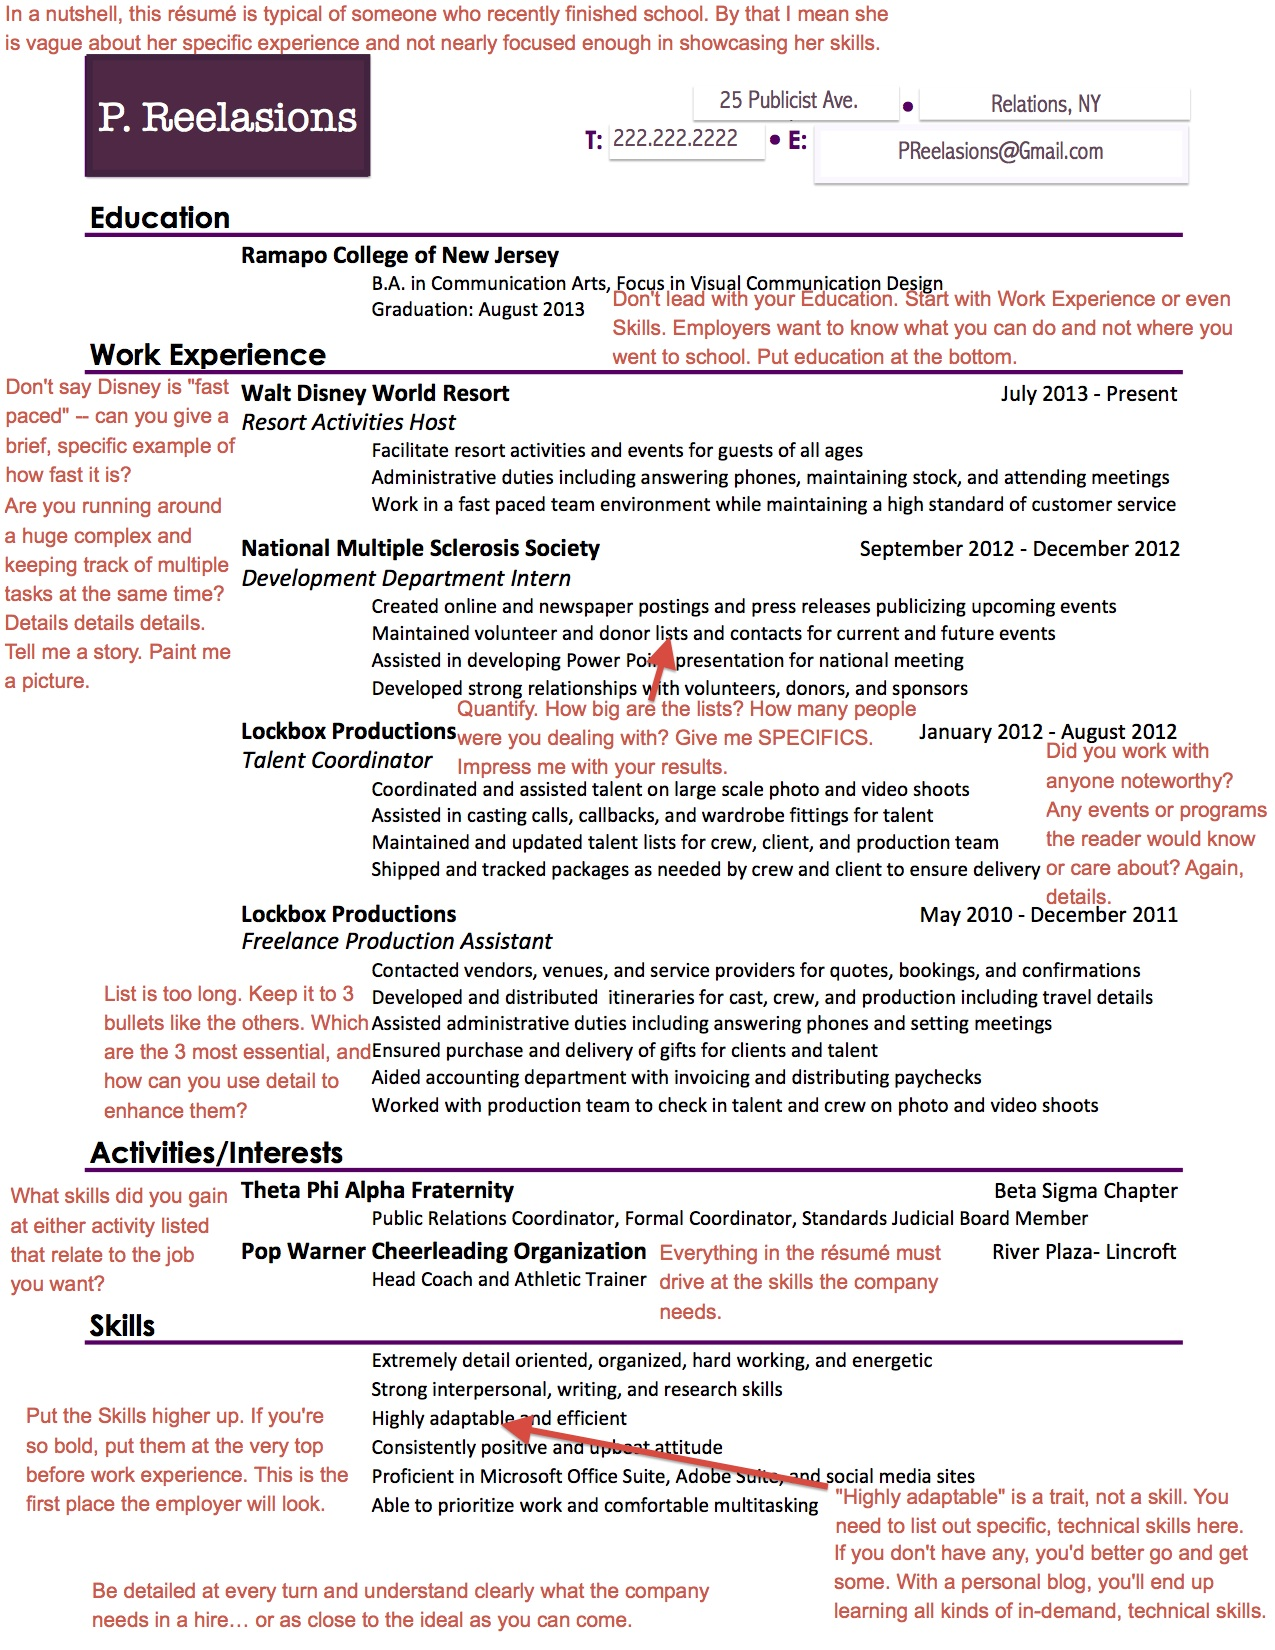 what employers are looking for on your pr résumé aftercollege p reelasions resume jpeg